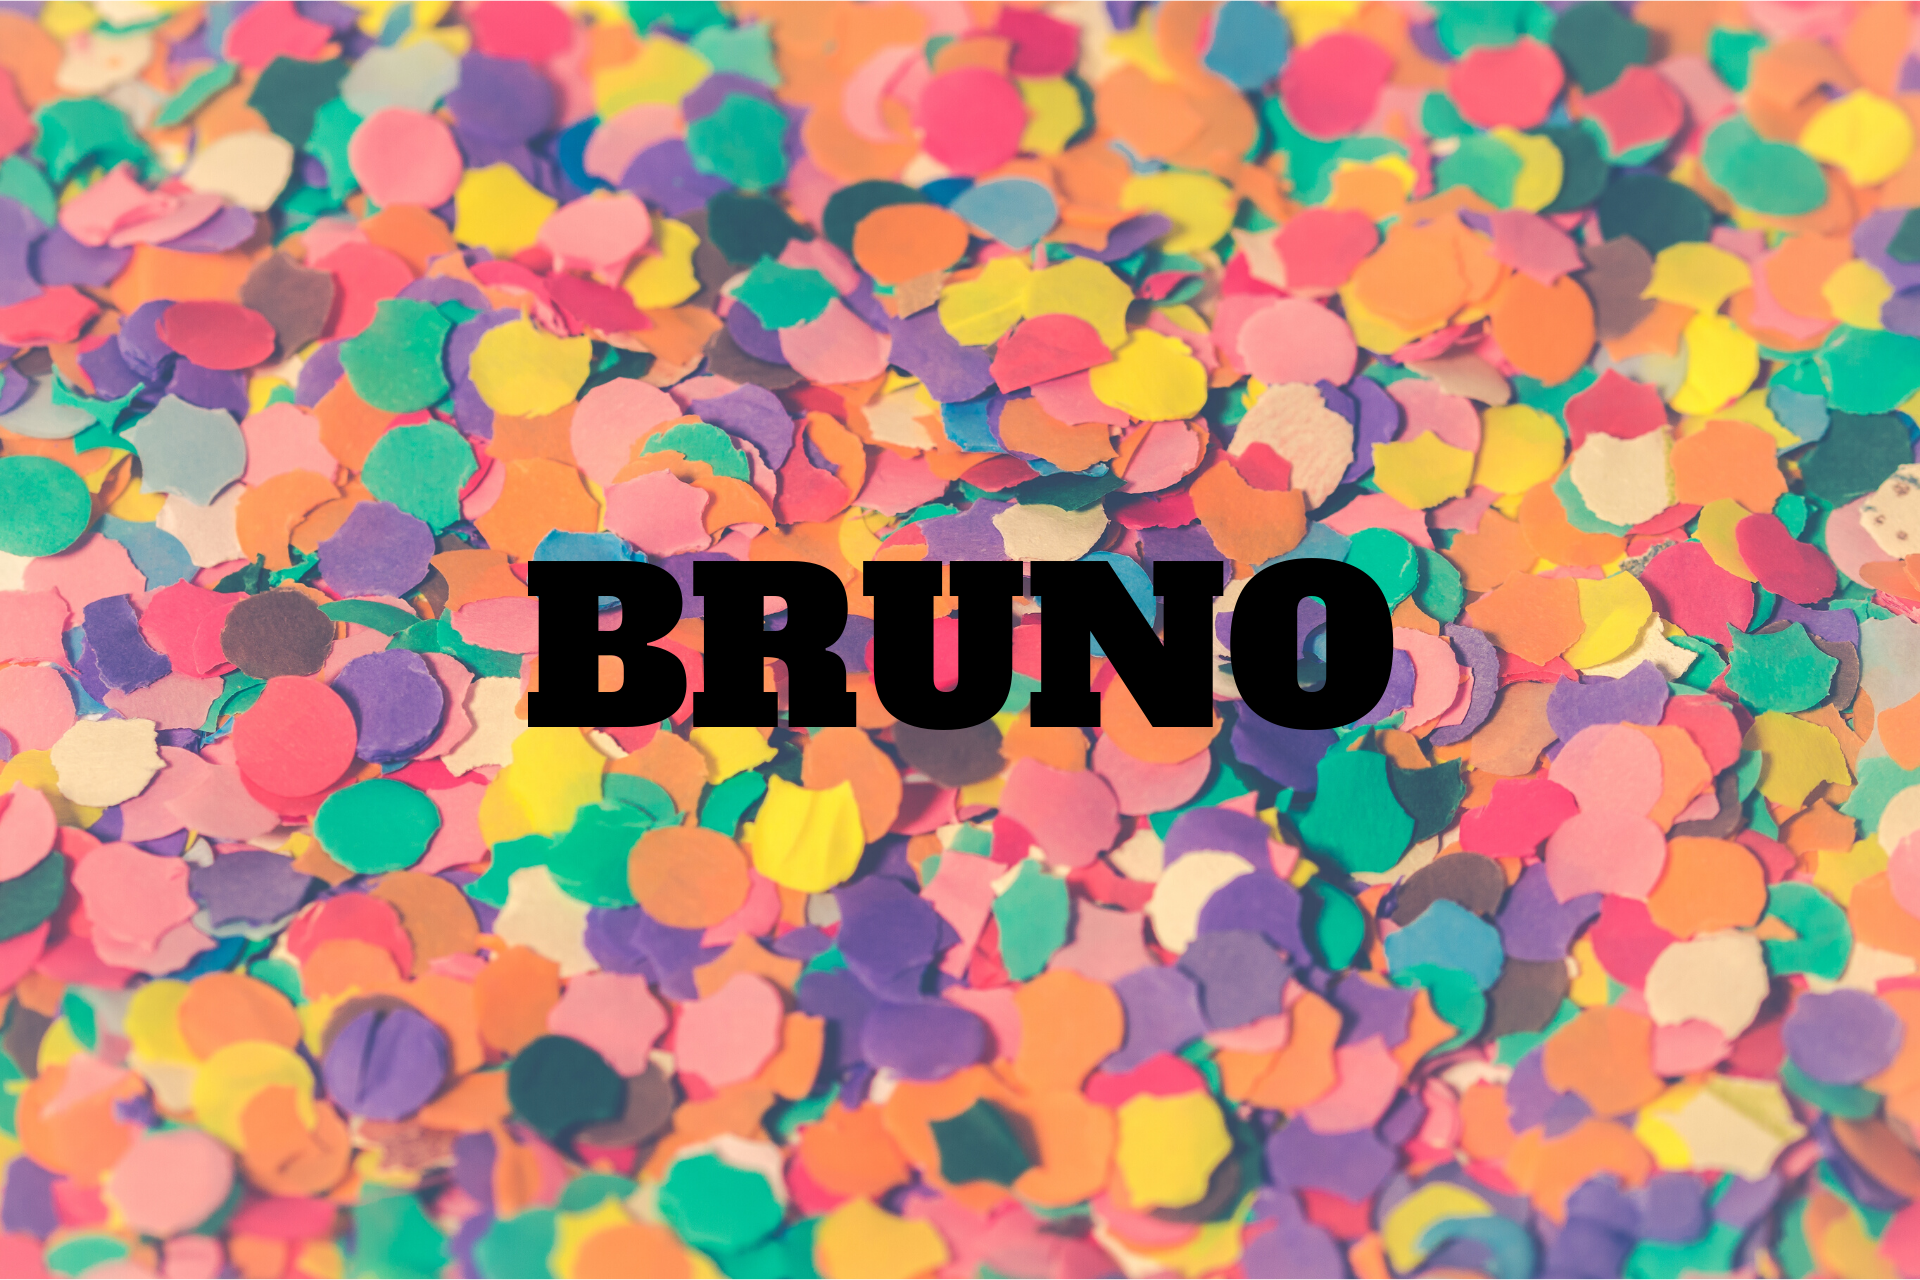 bruno-significado-do-nome